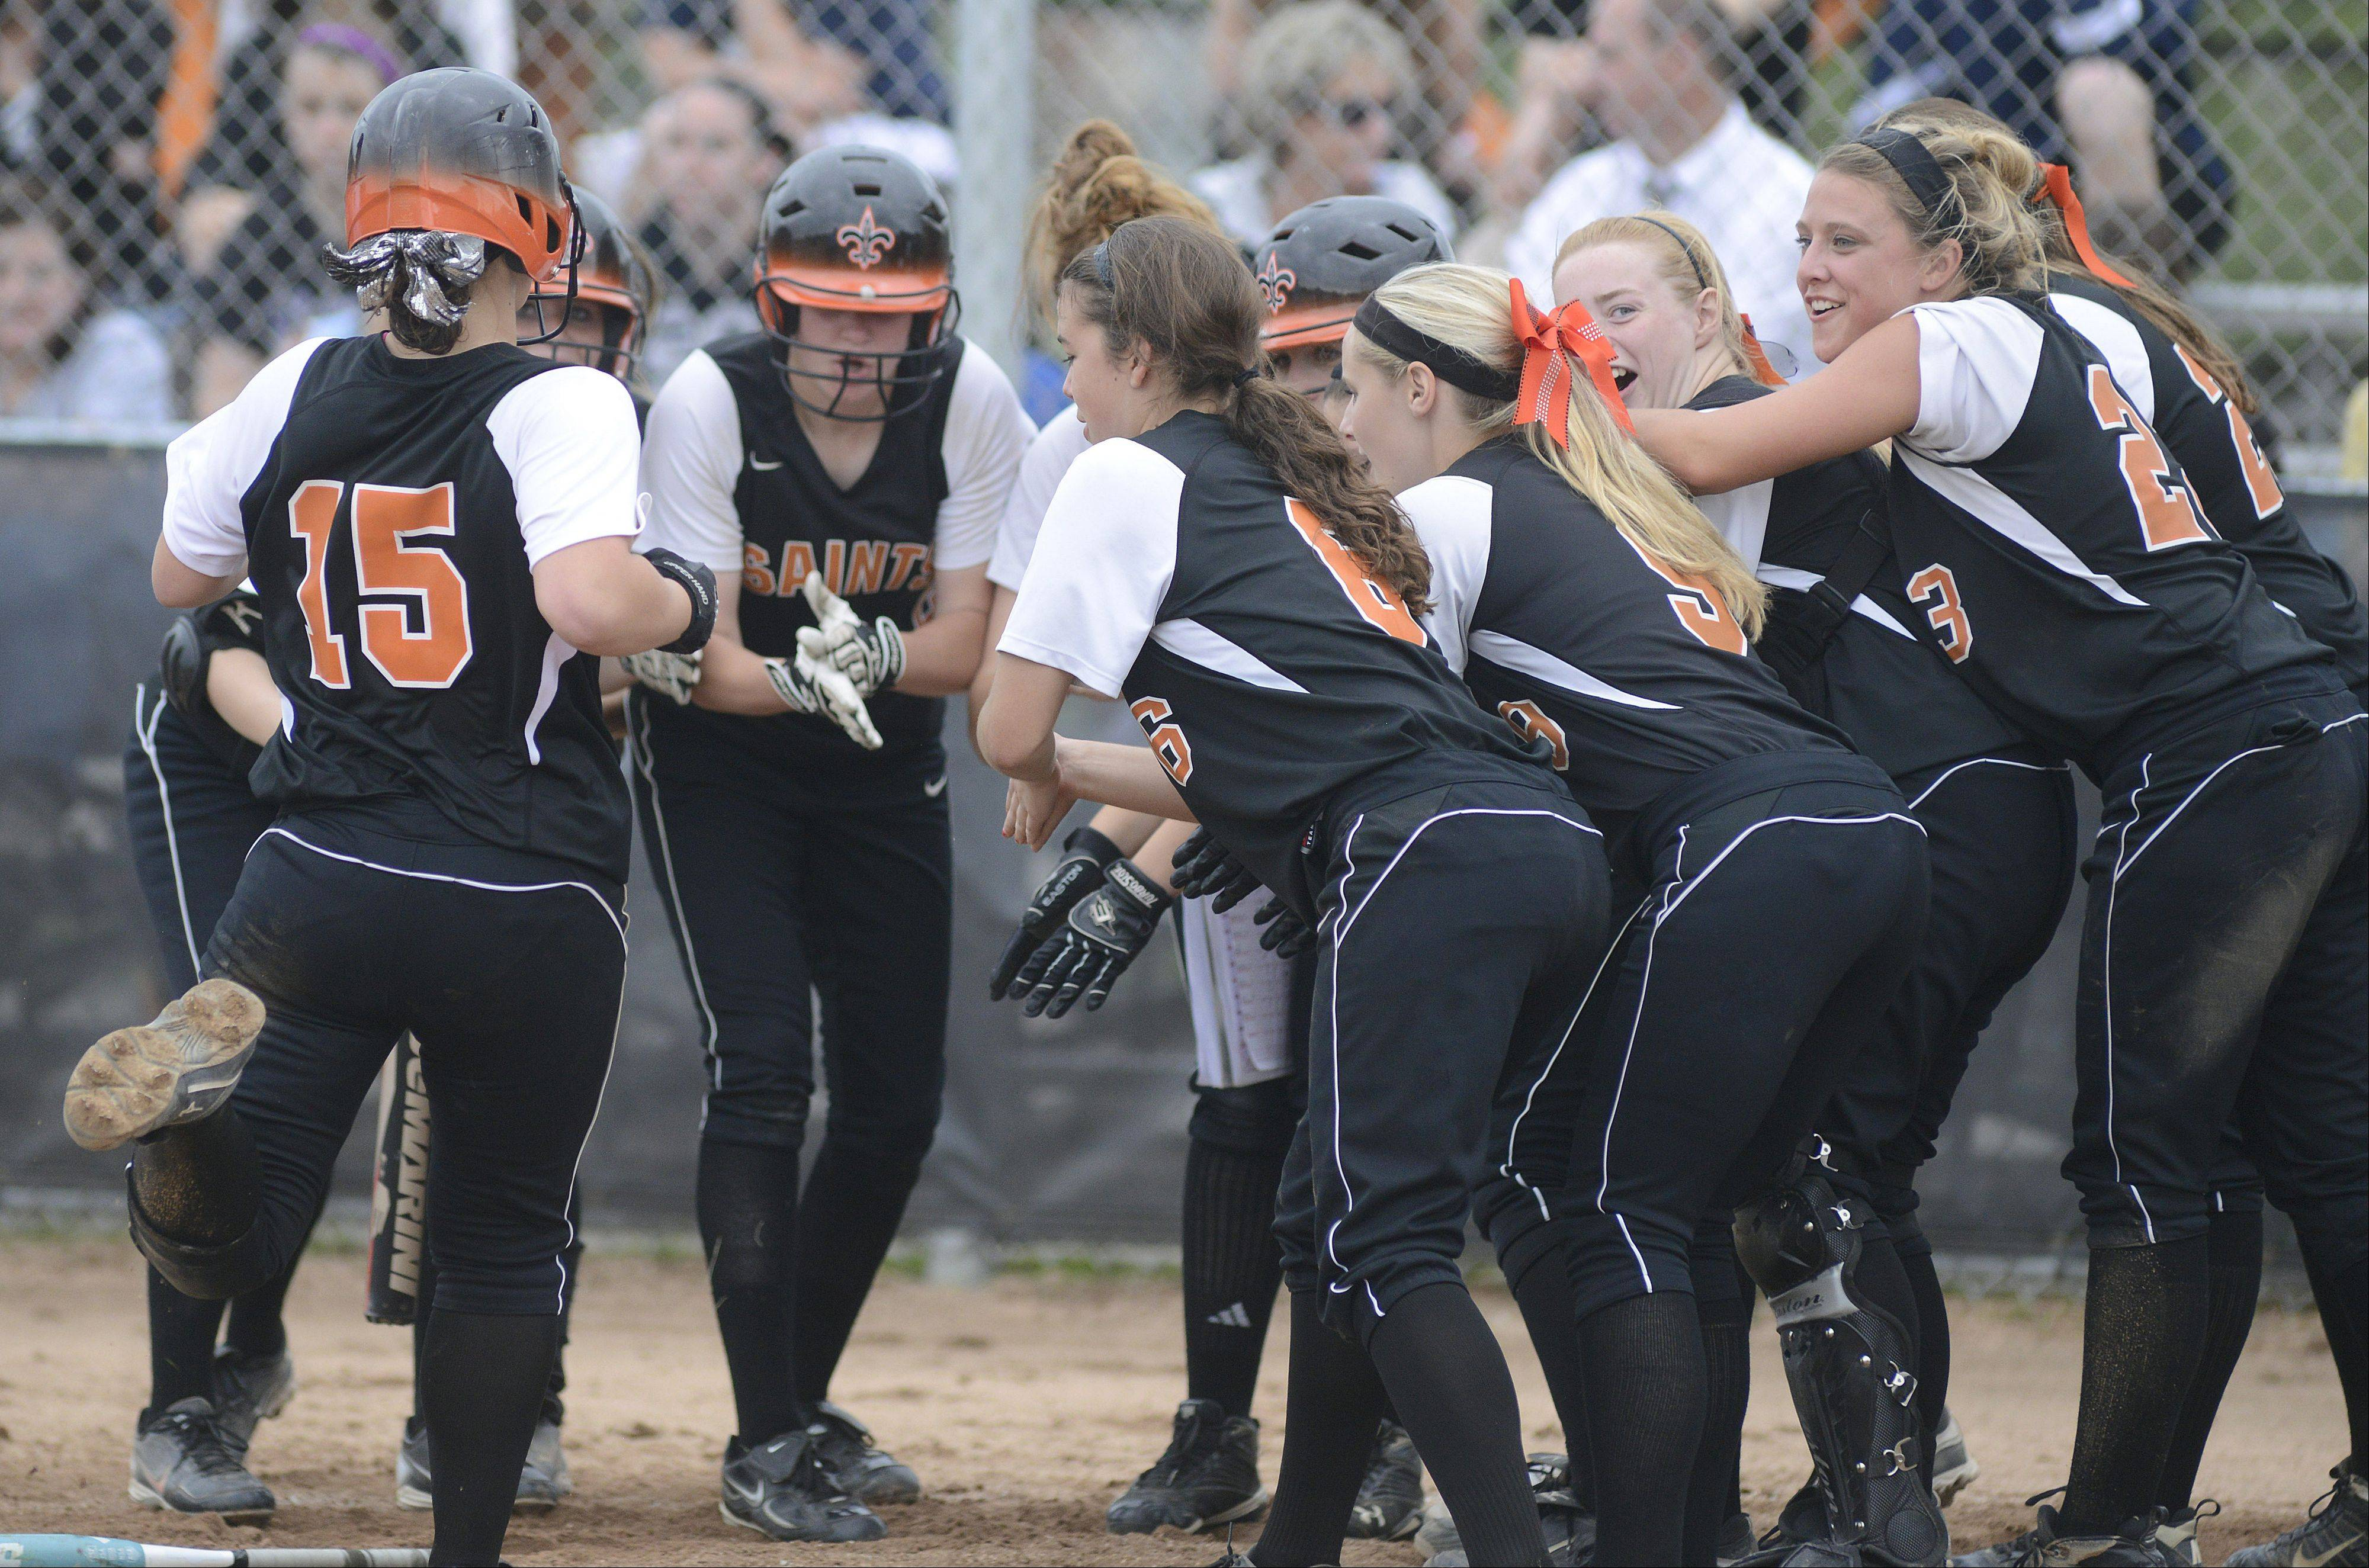 St. Charles East's Alex Latoria is welcomed at home plate after hitting a home run in the sixth inning of the Saints' Class 4A sectional semifinal win over Bartlett on Tuesday in St. Charles.